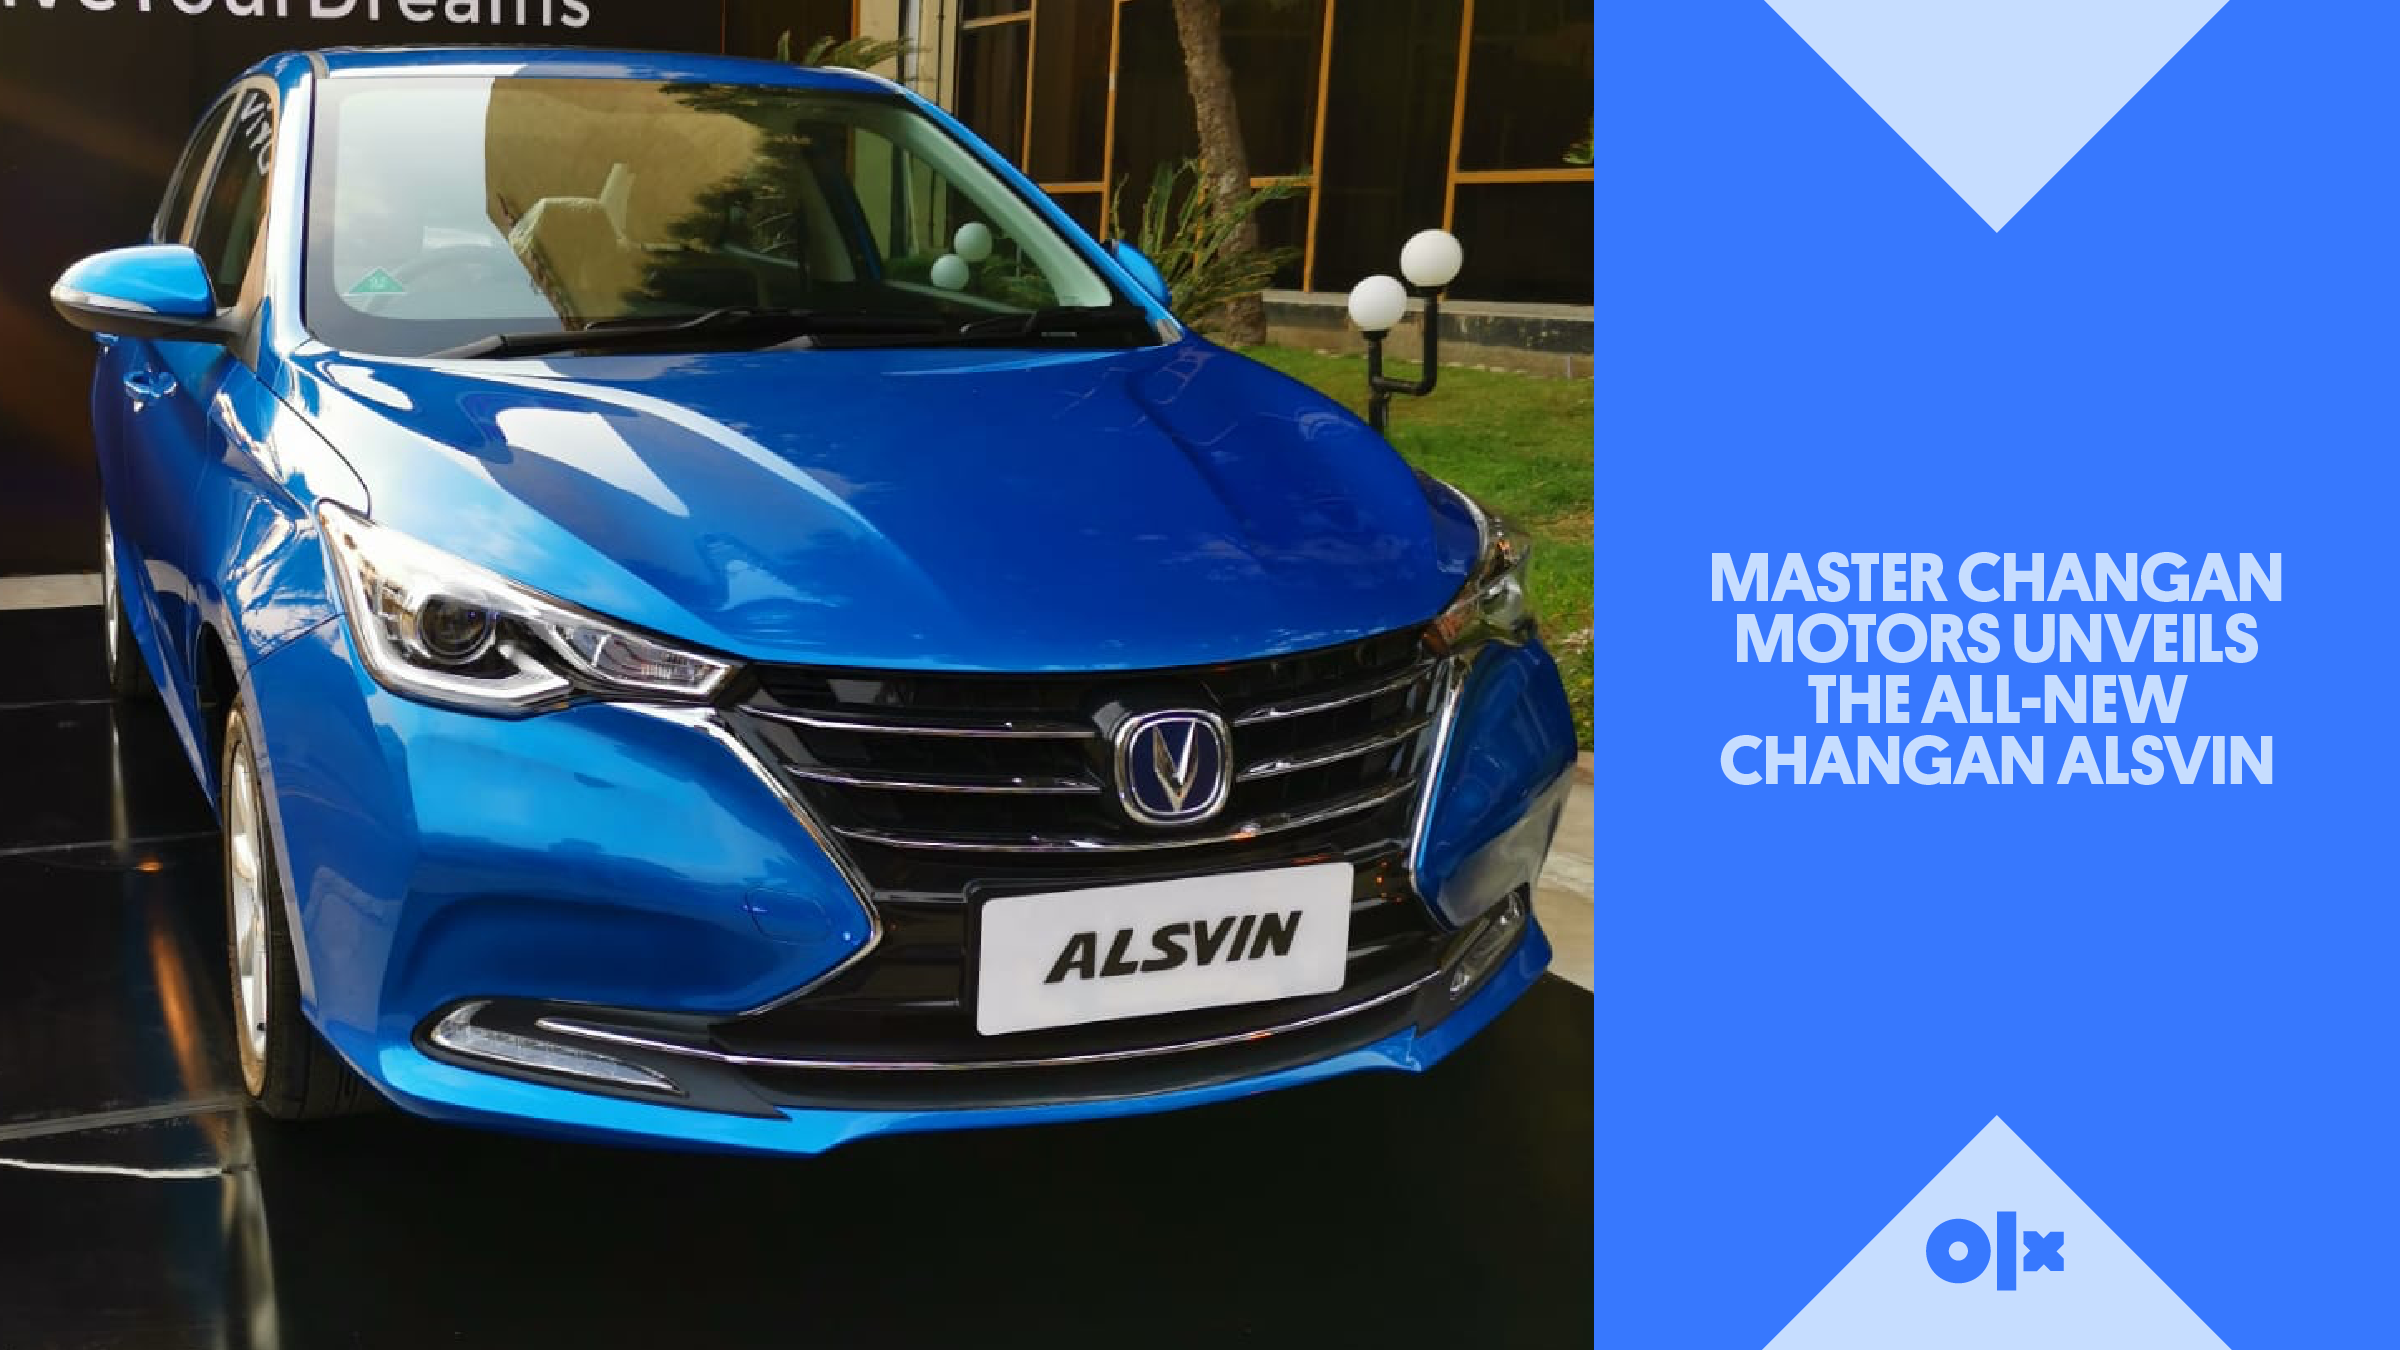 Master Changan Motors Unveils The All-New Changan Alsvin – Pakistan's 1st Euro-5 Smart Sedan